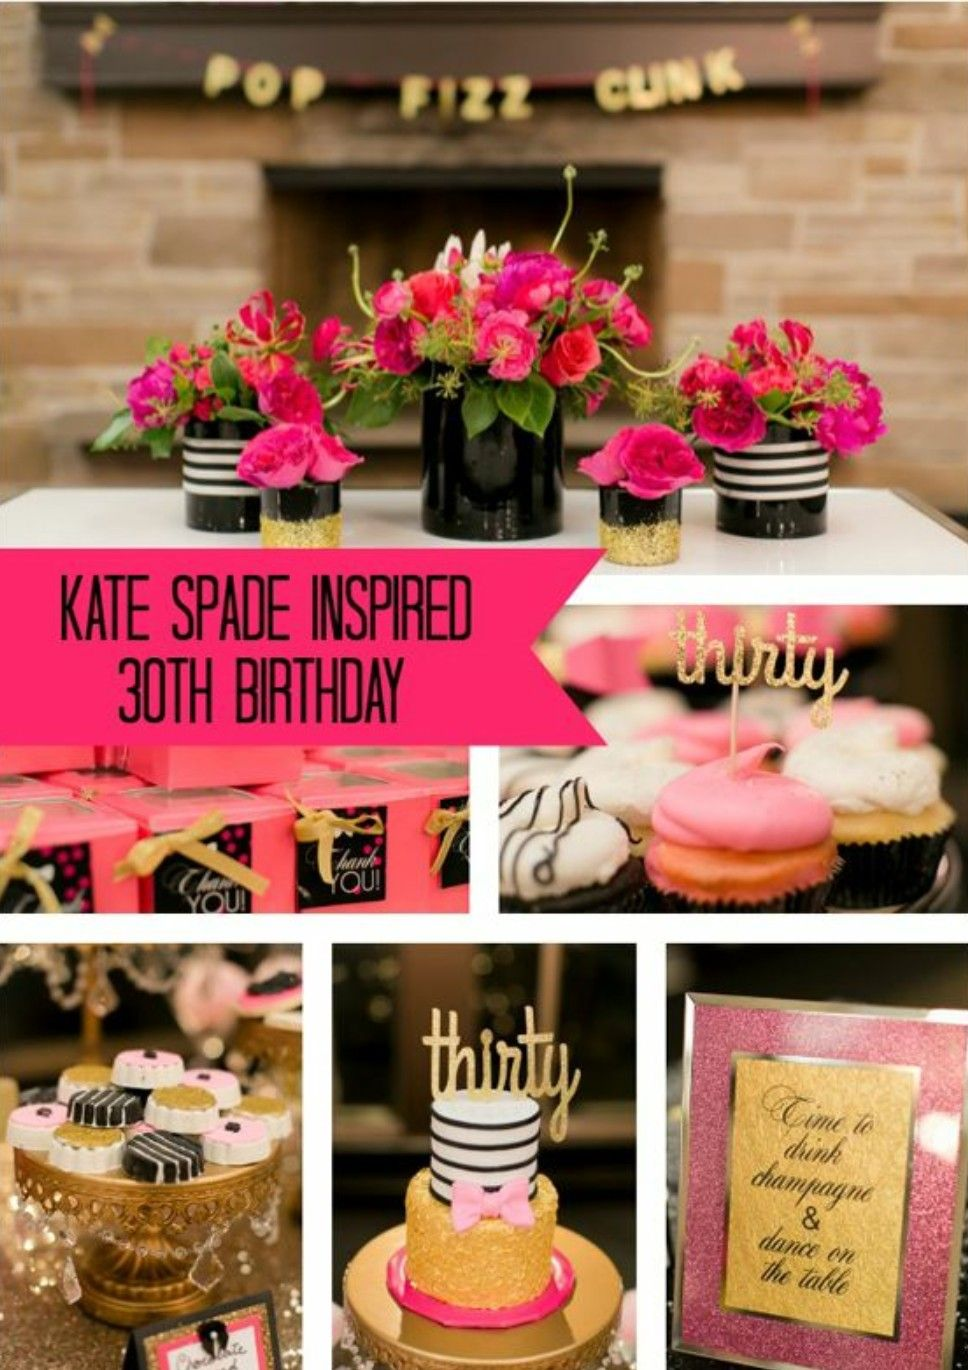 Kate Spade Inspired 30th Birthday Decor